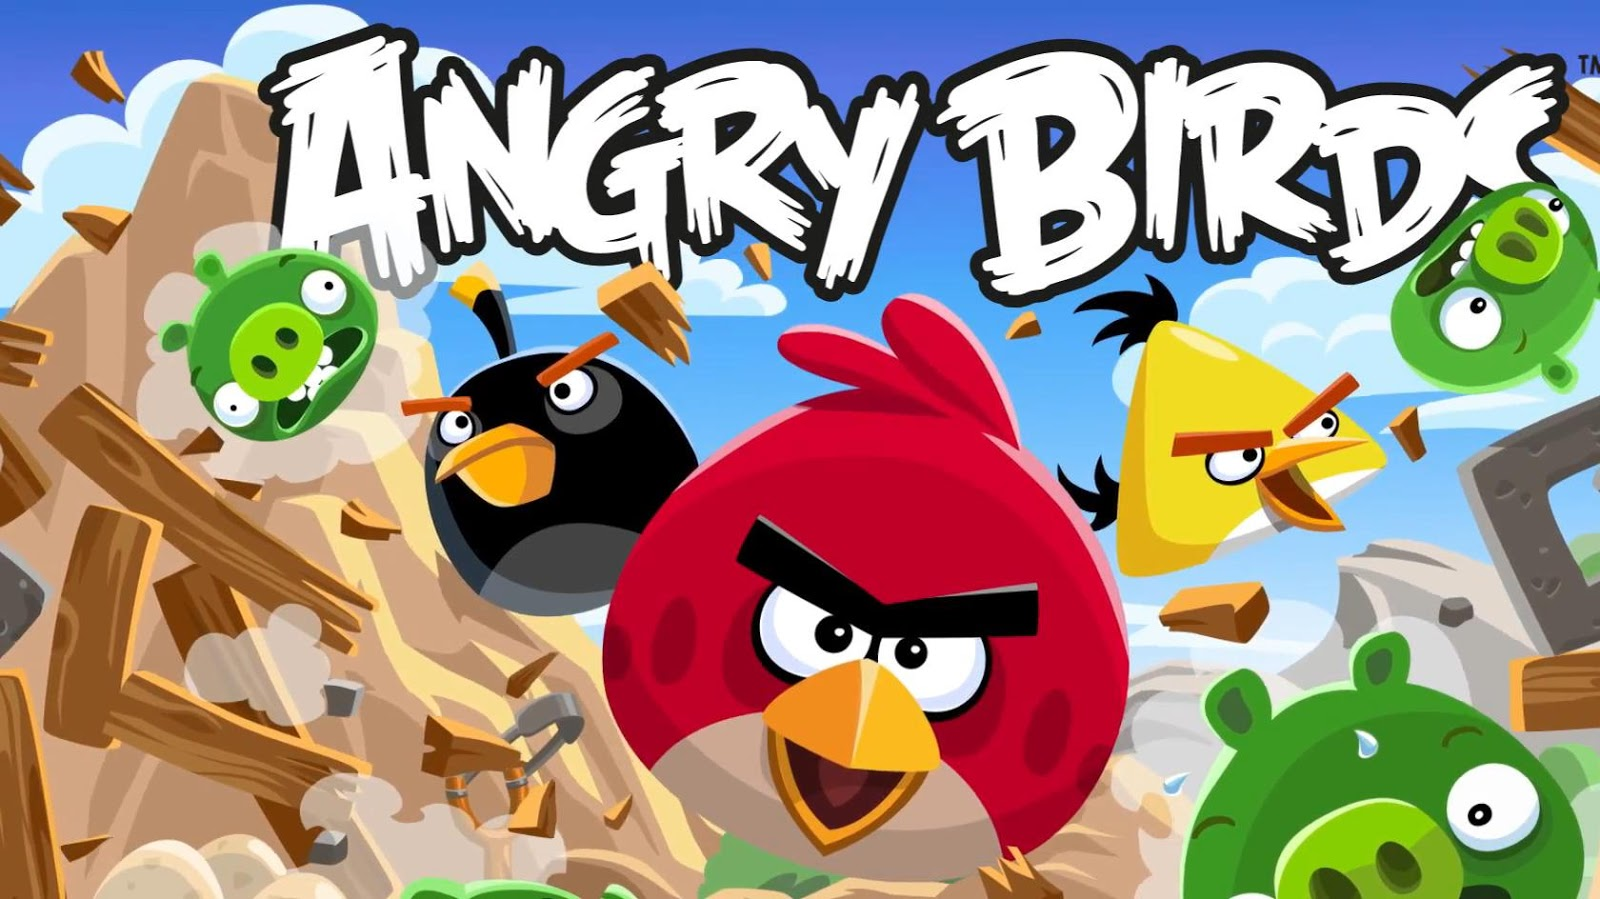 Angry Birds Hammier Things games - castilho vips: angry birds